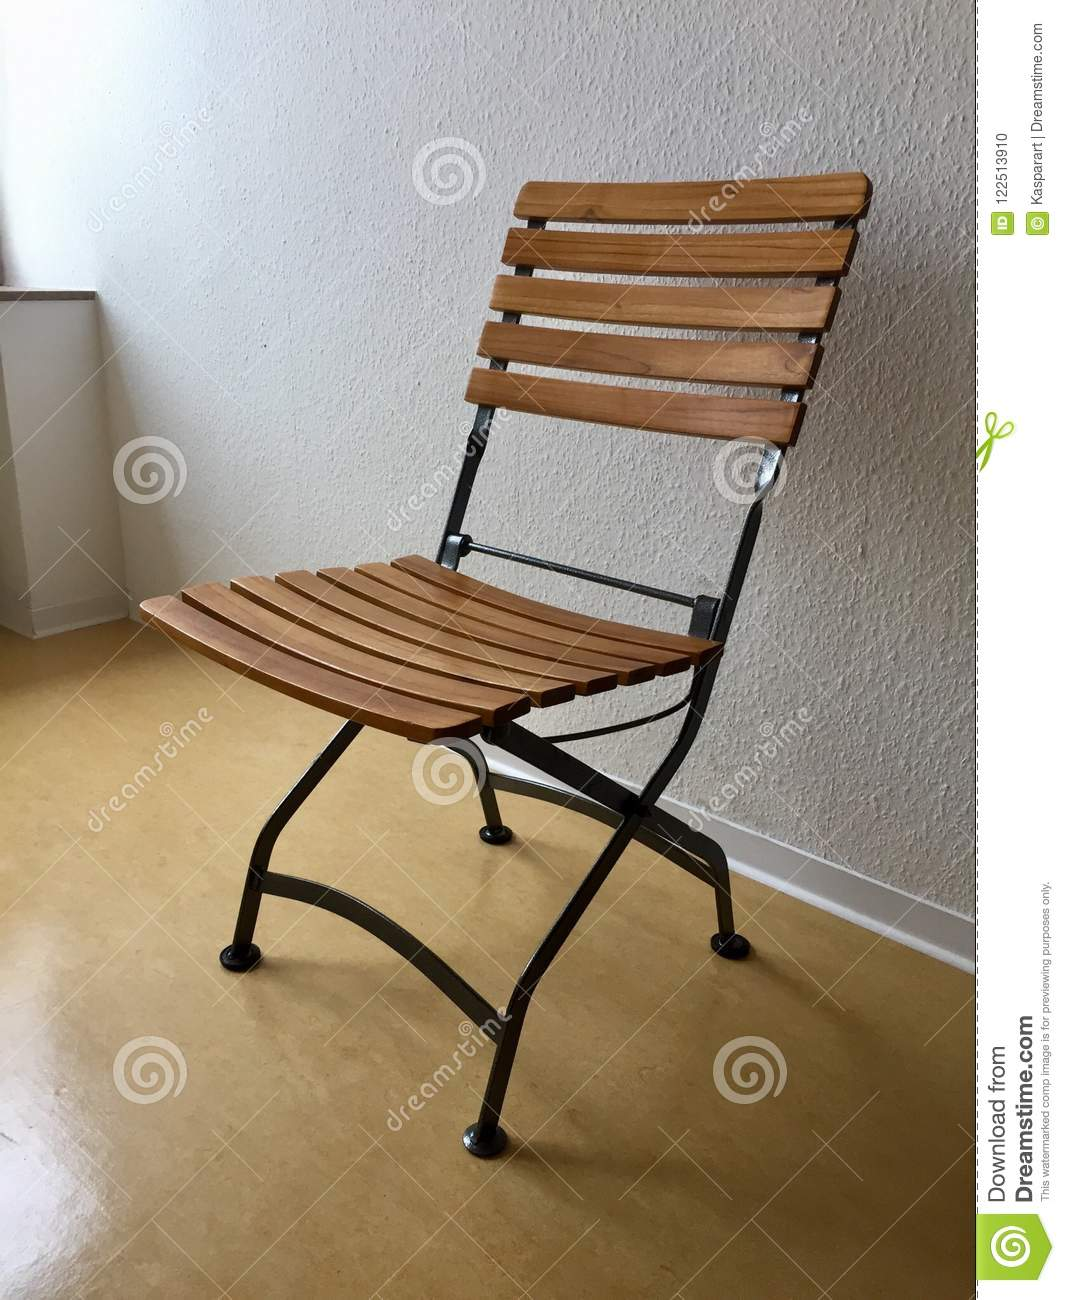 Collapsible Chair Empty Collapsible Chair At A White Wall Stock Photo Image Of